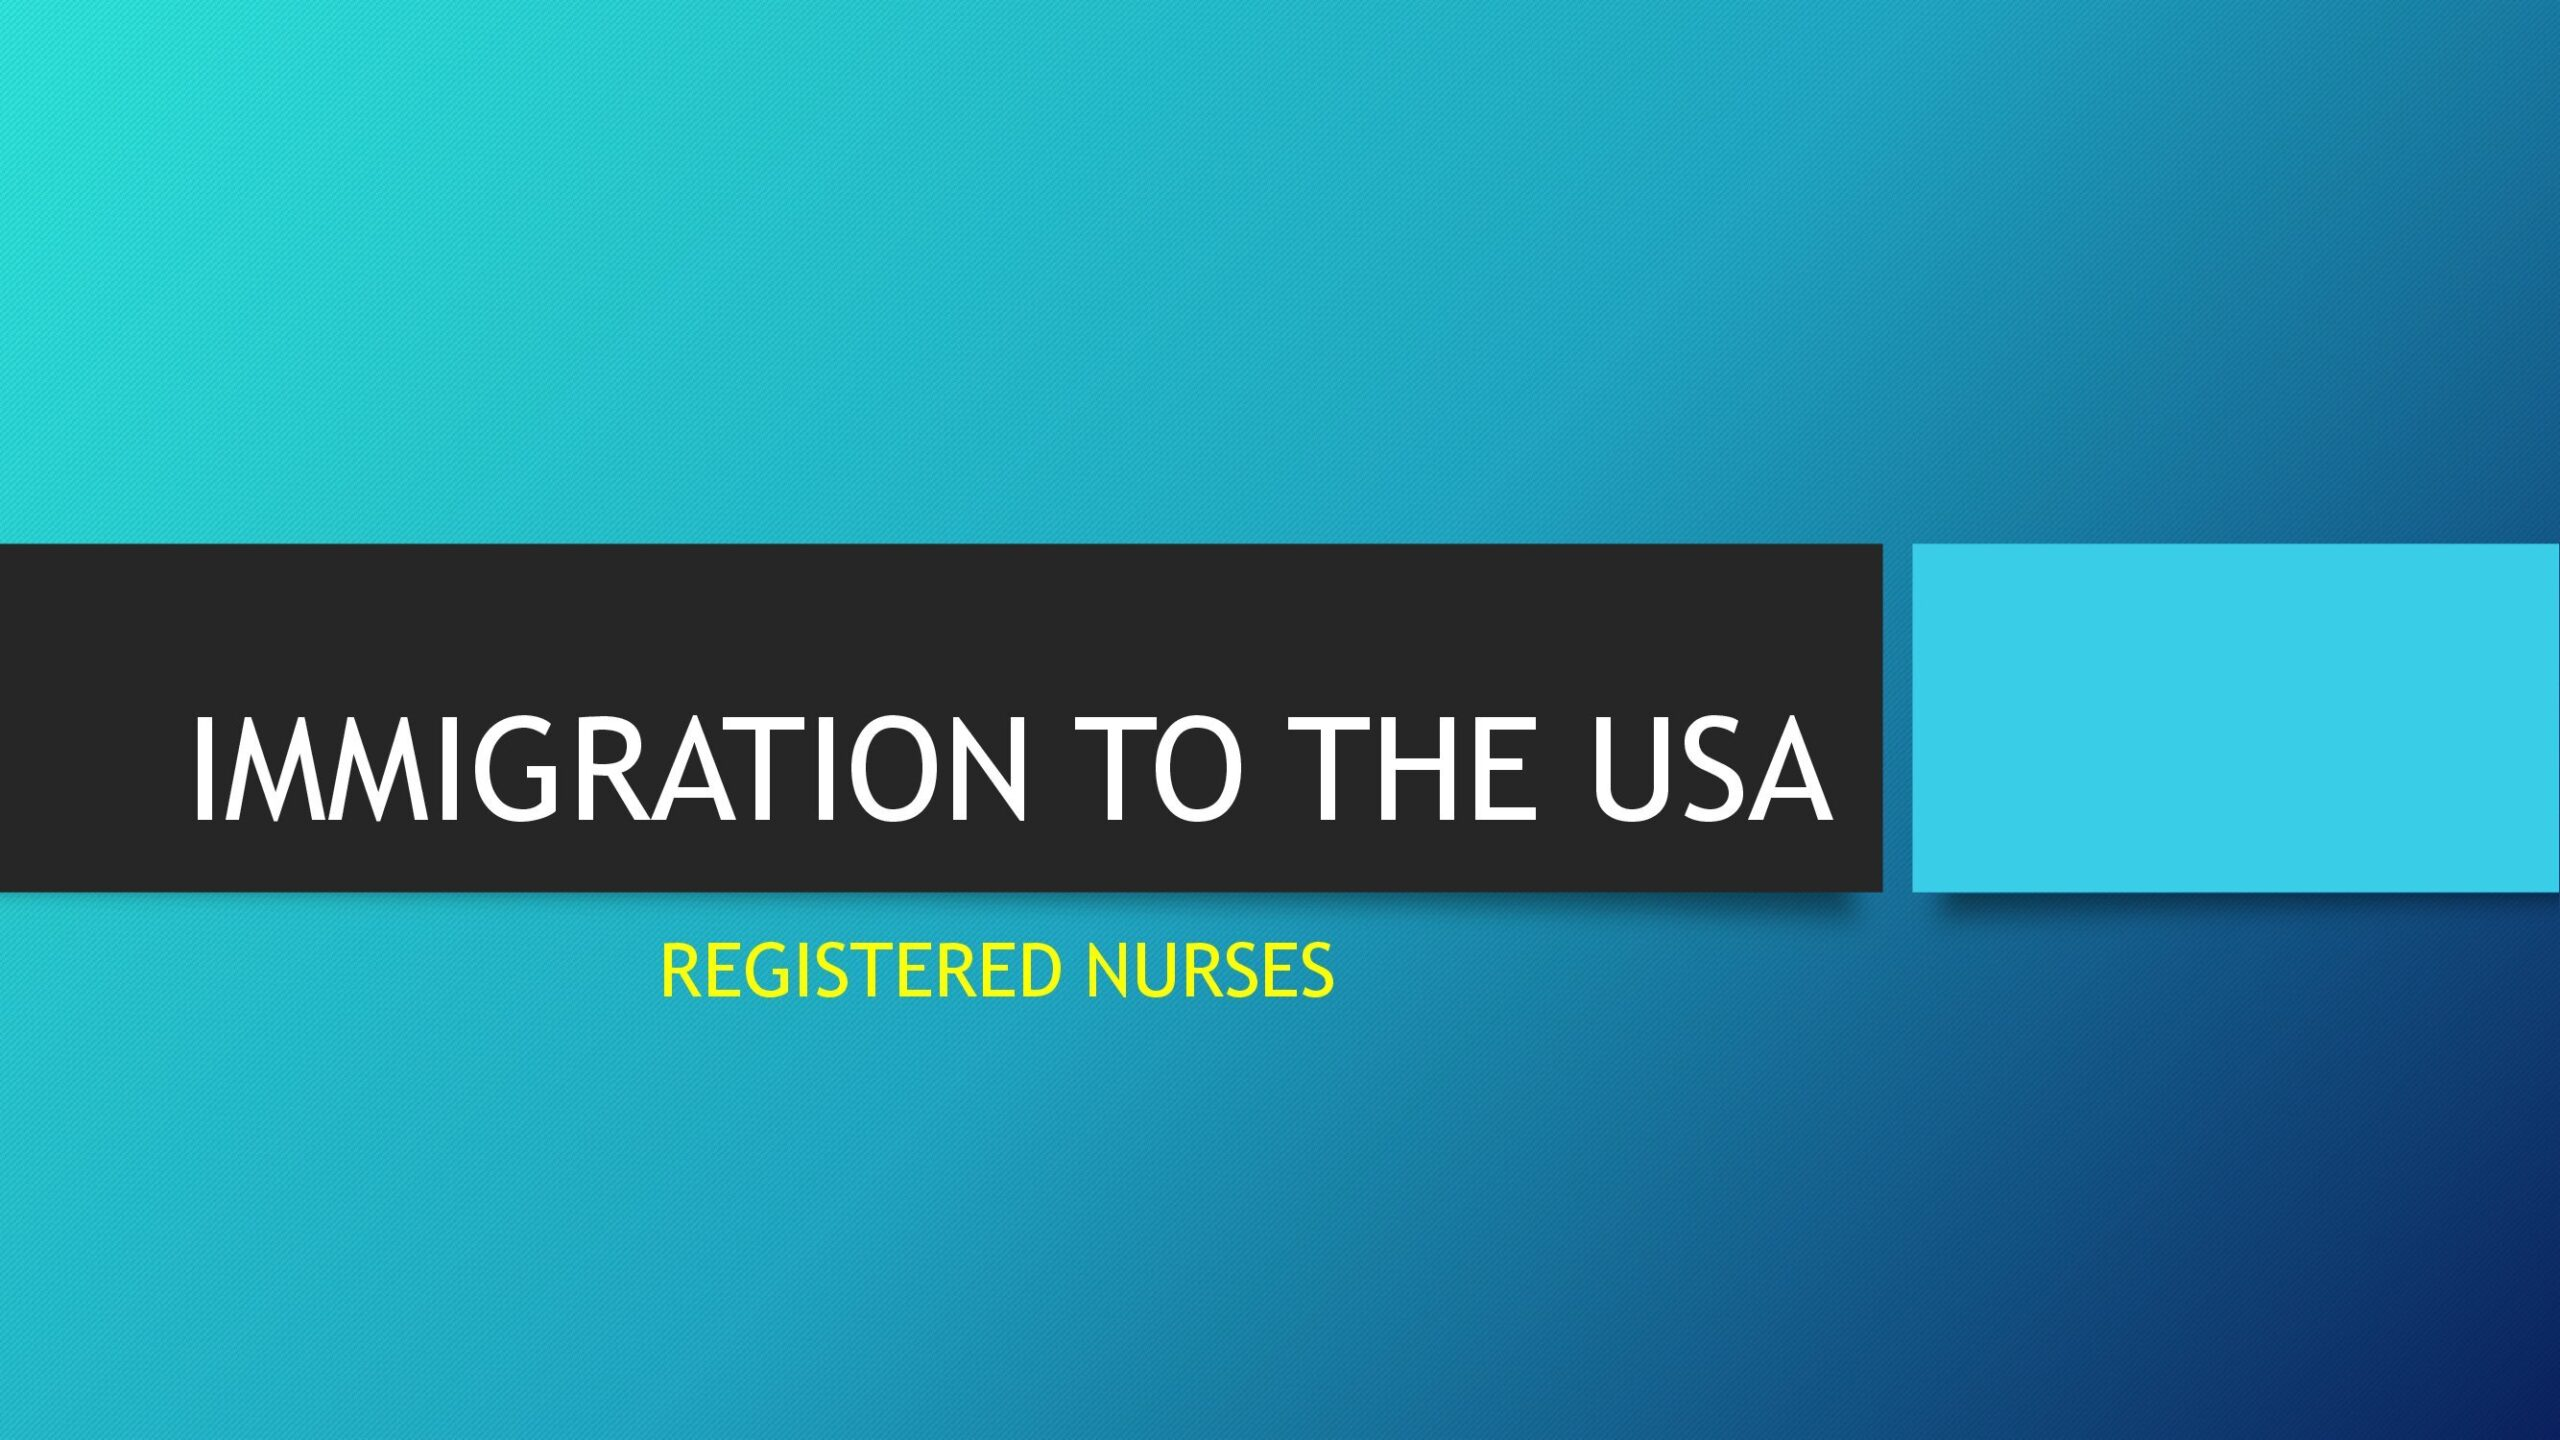 Immigration To The USA Registered Nurses